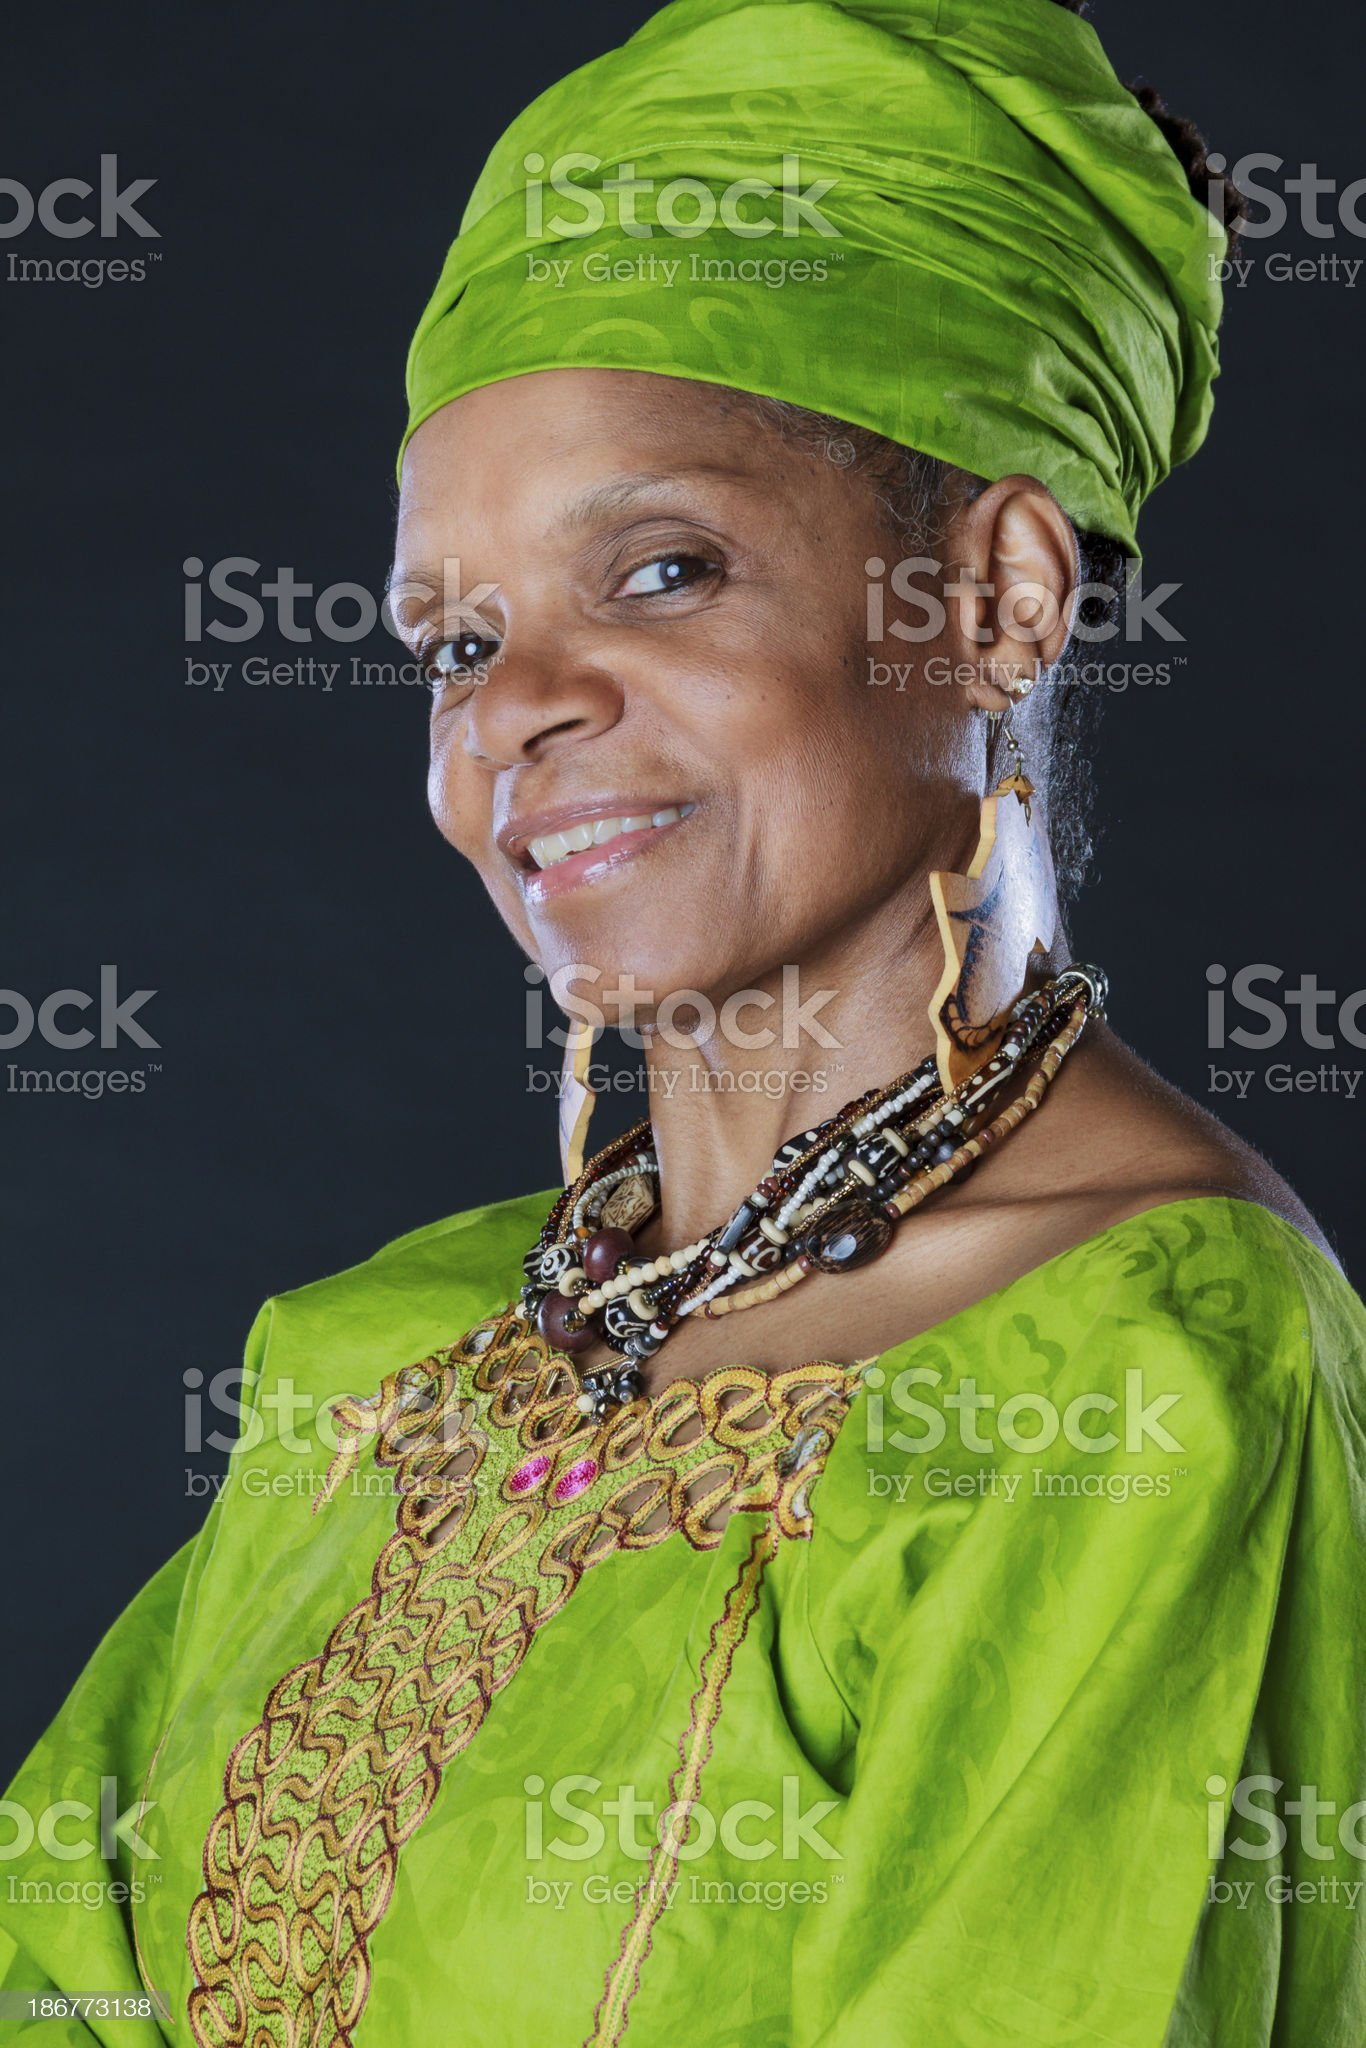 Beautiful Senior African American Woman In Colorful Attire royalty-free stock photo